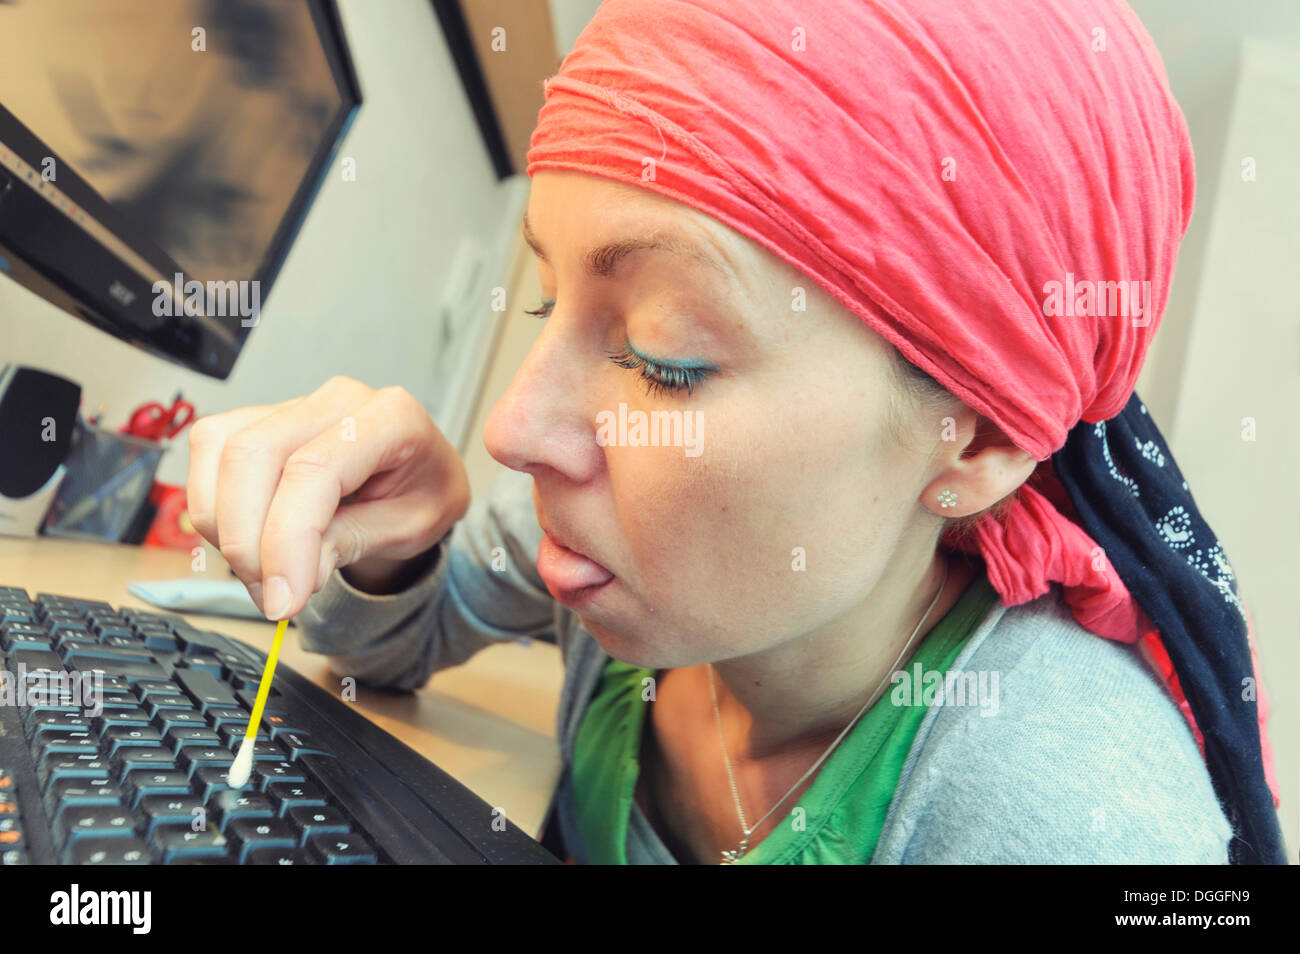 Cleaning lady cleaning a computer keyboard with a cotton swab, Germany - Stock Image